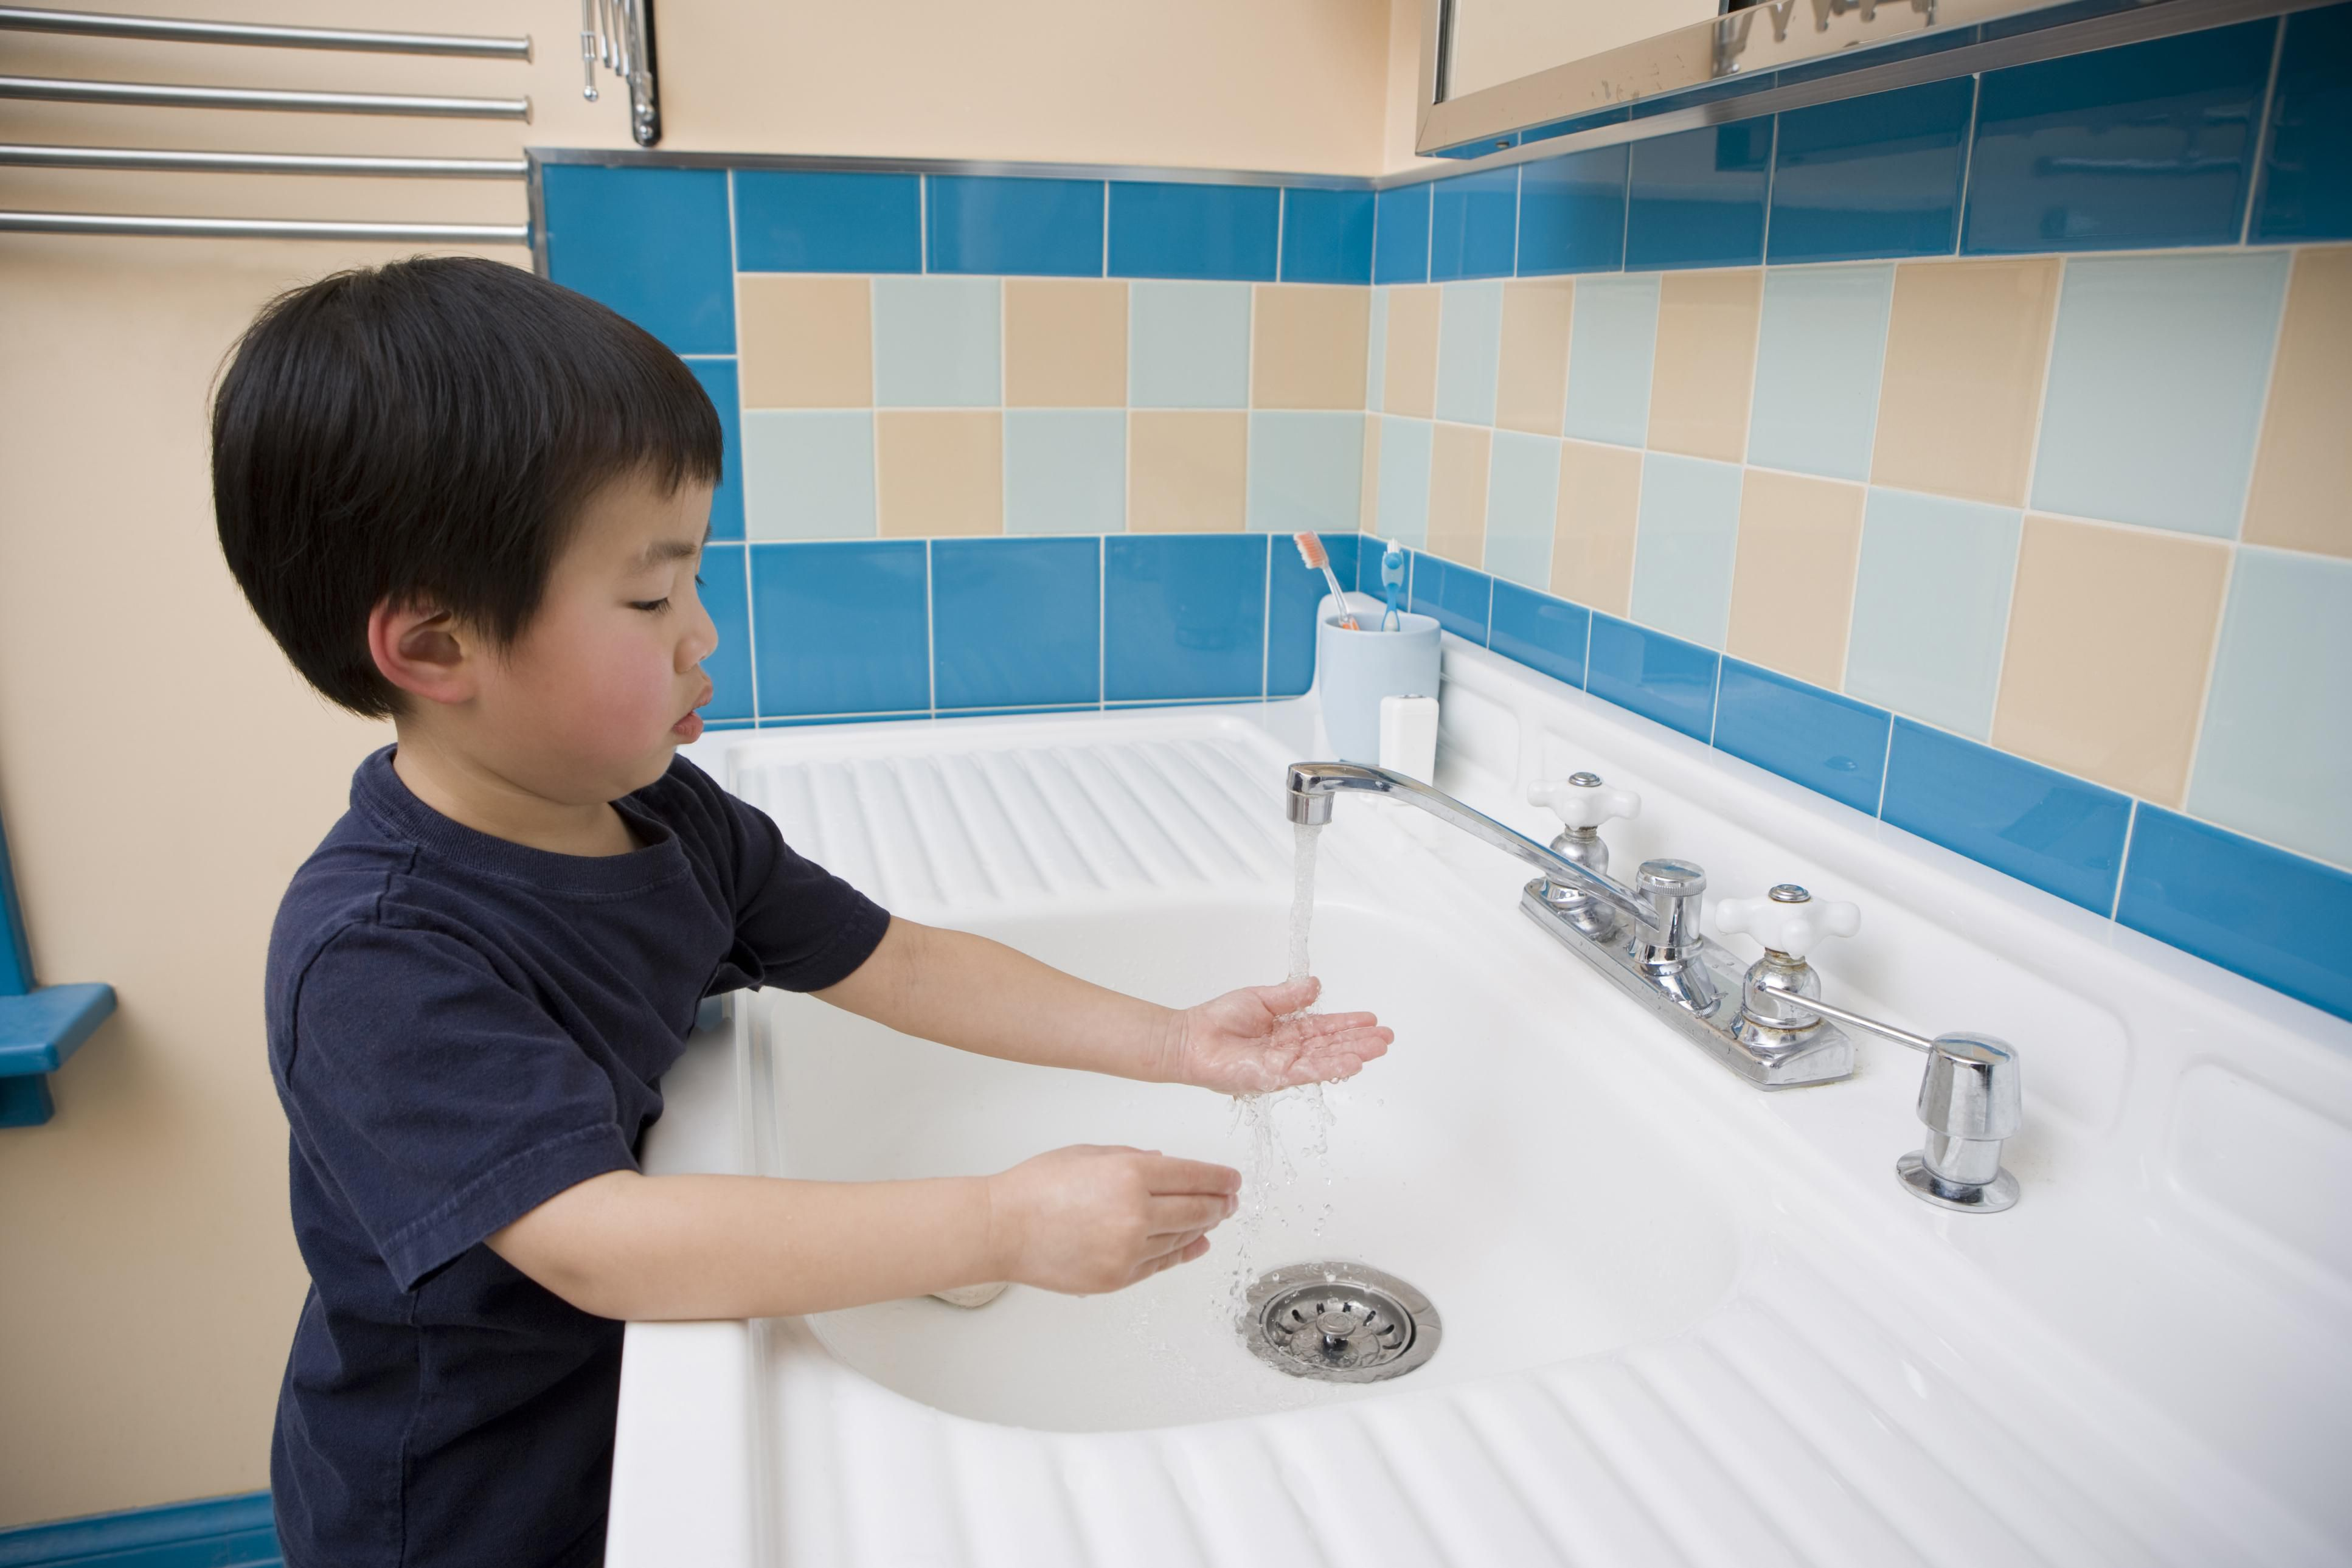 How To Teach Hand Washing To Preschoolers